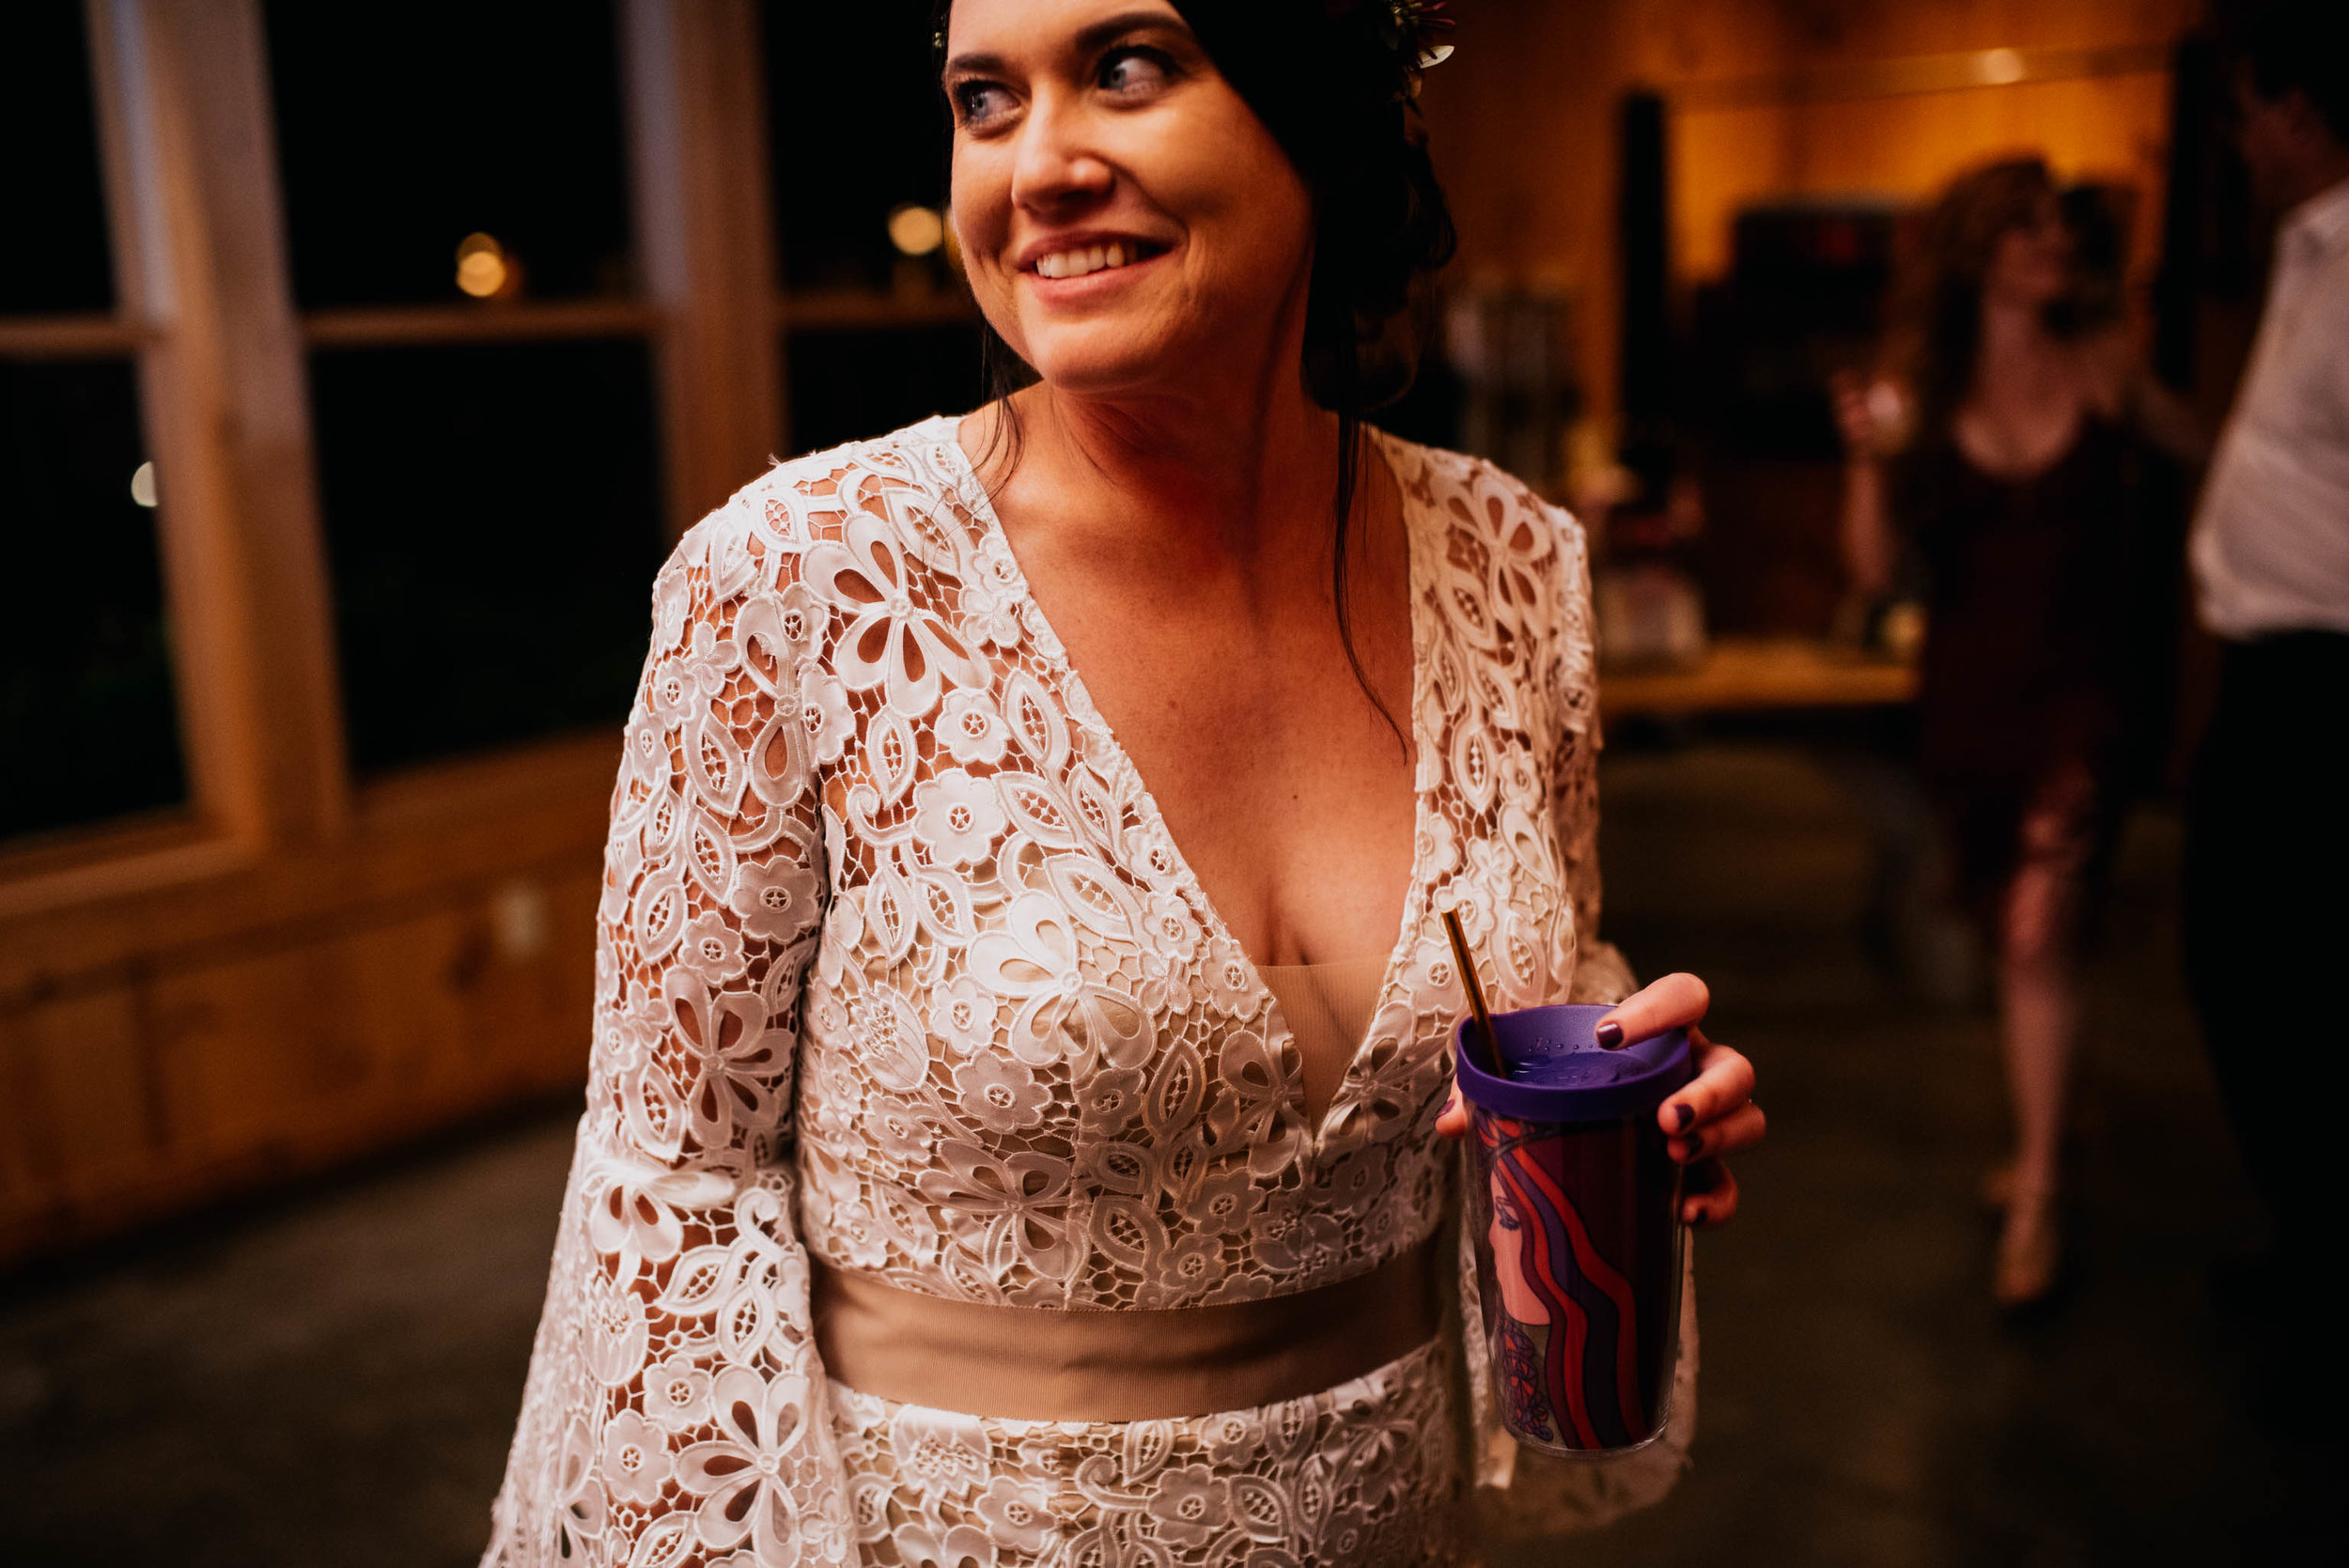 bride smiling during the reception while on the dancefloor